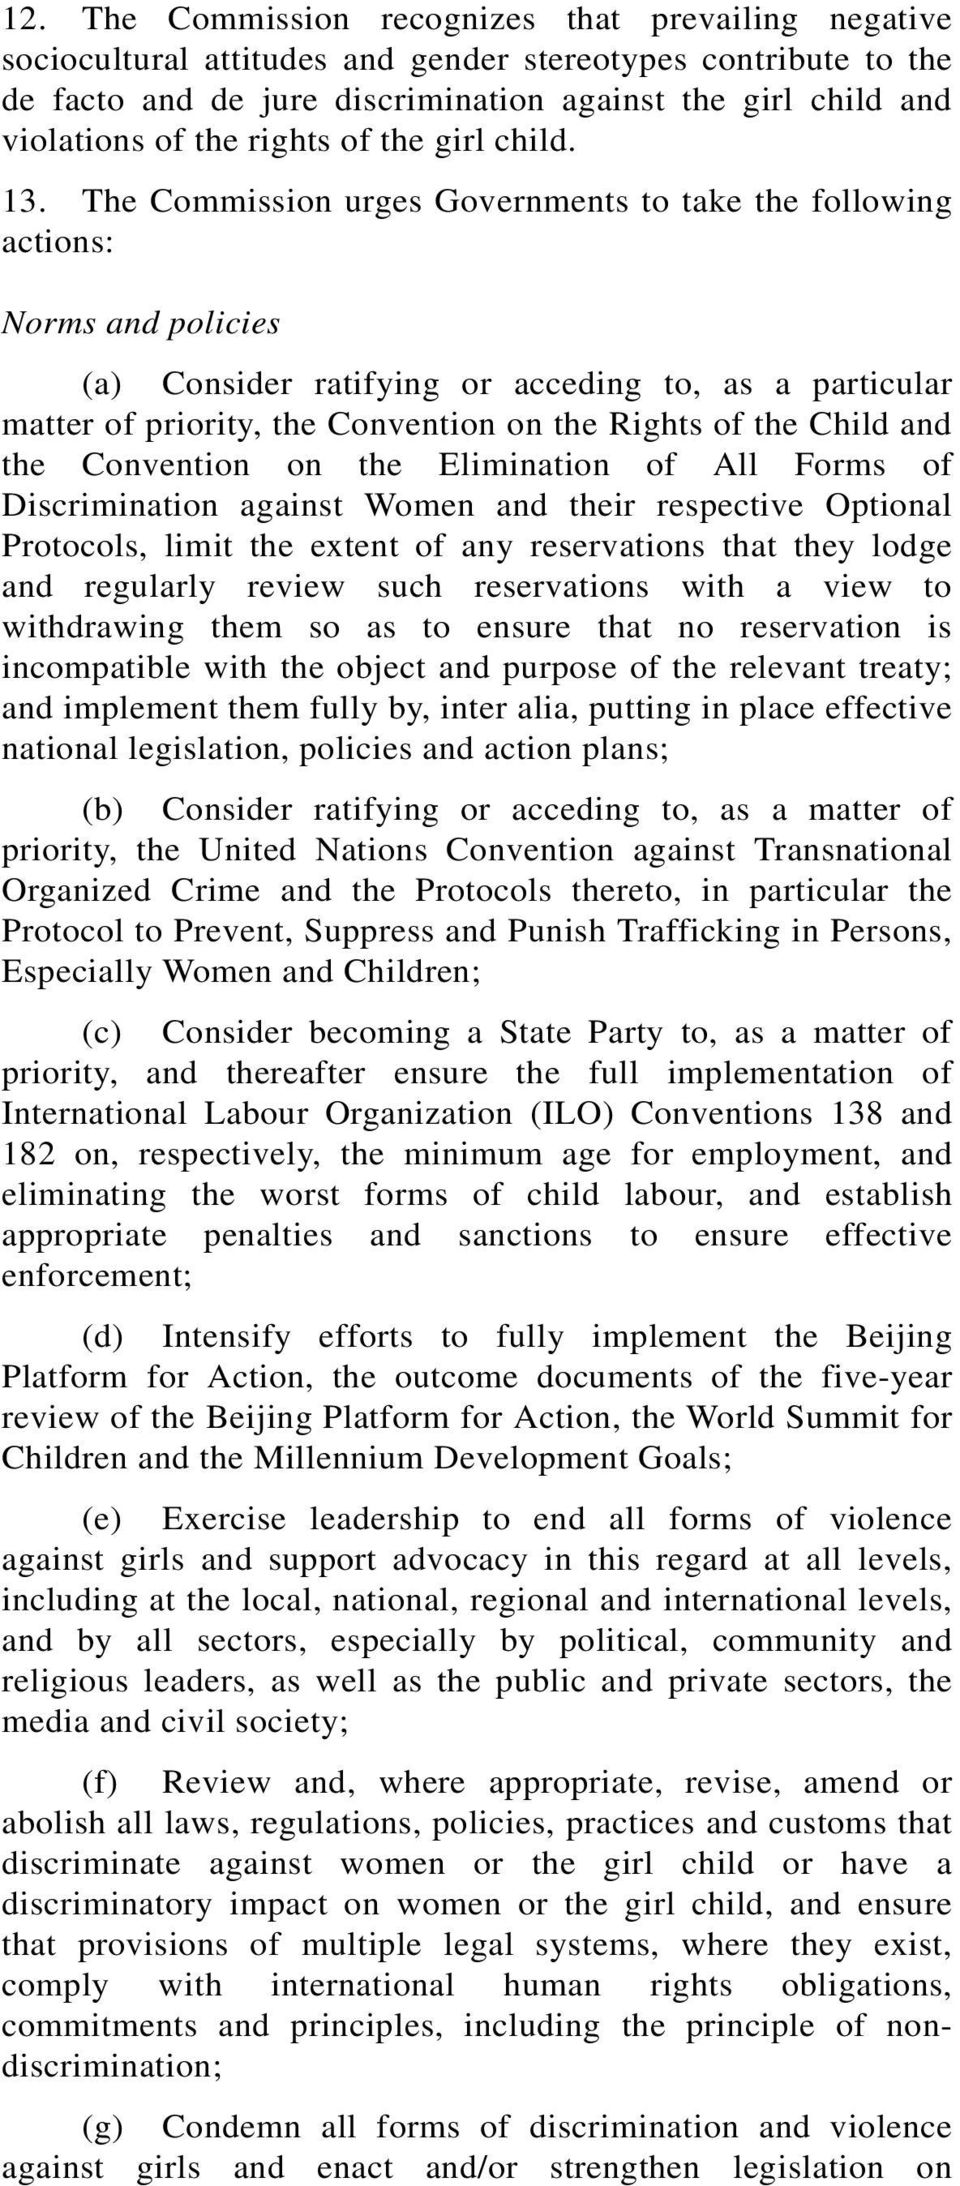 The Commission urges Governments to take the following actions: Norms and policies (a) Consider ratifying or acceding to, as a particular matter of priority, the Convention on the Rights of the Child